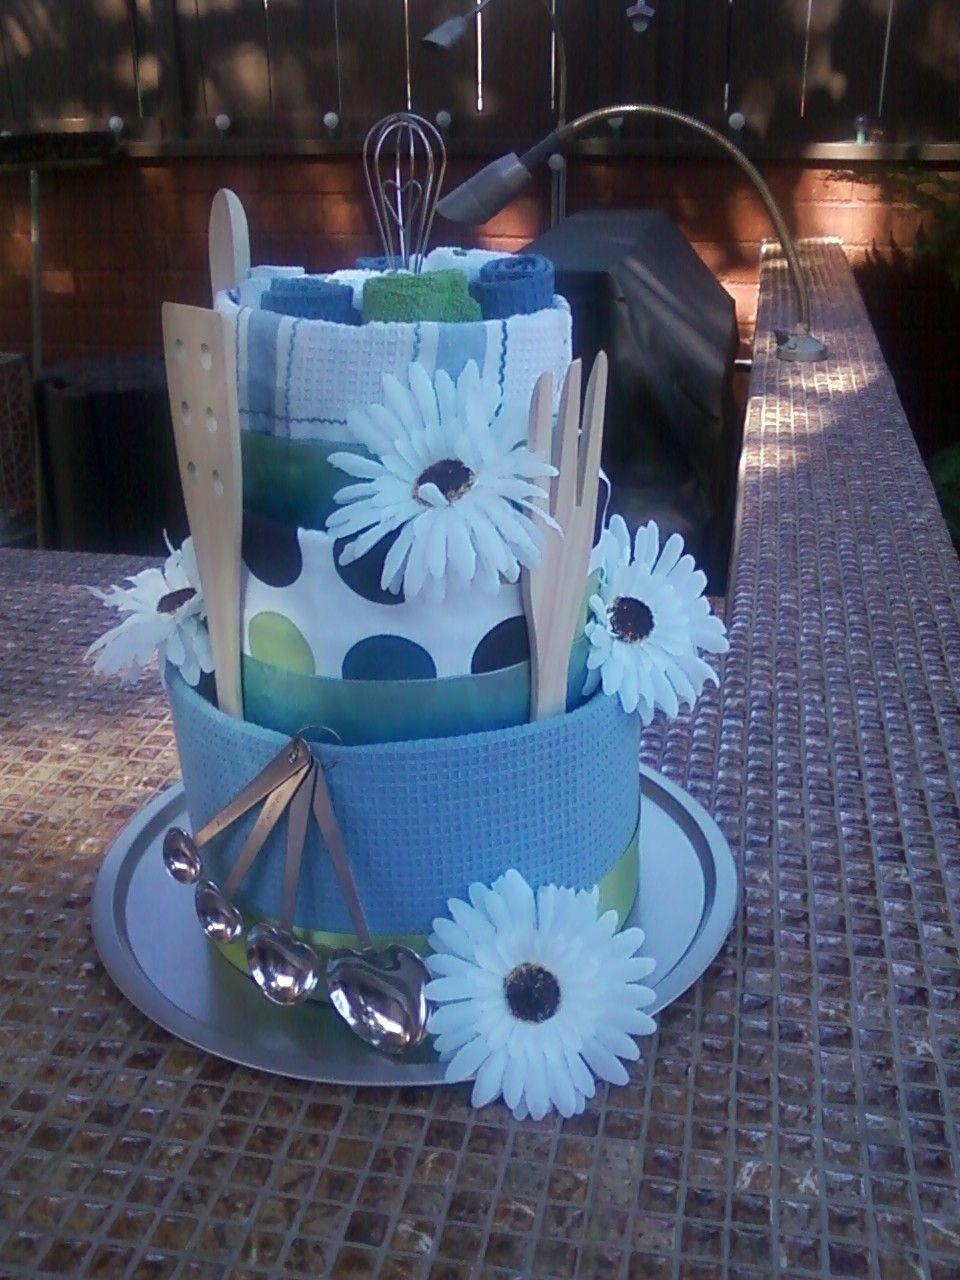 Kitchen Towel Cake | My projects | Pinterest | Kitchen towel cakes ...